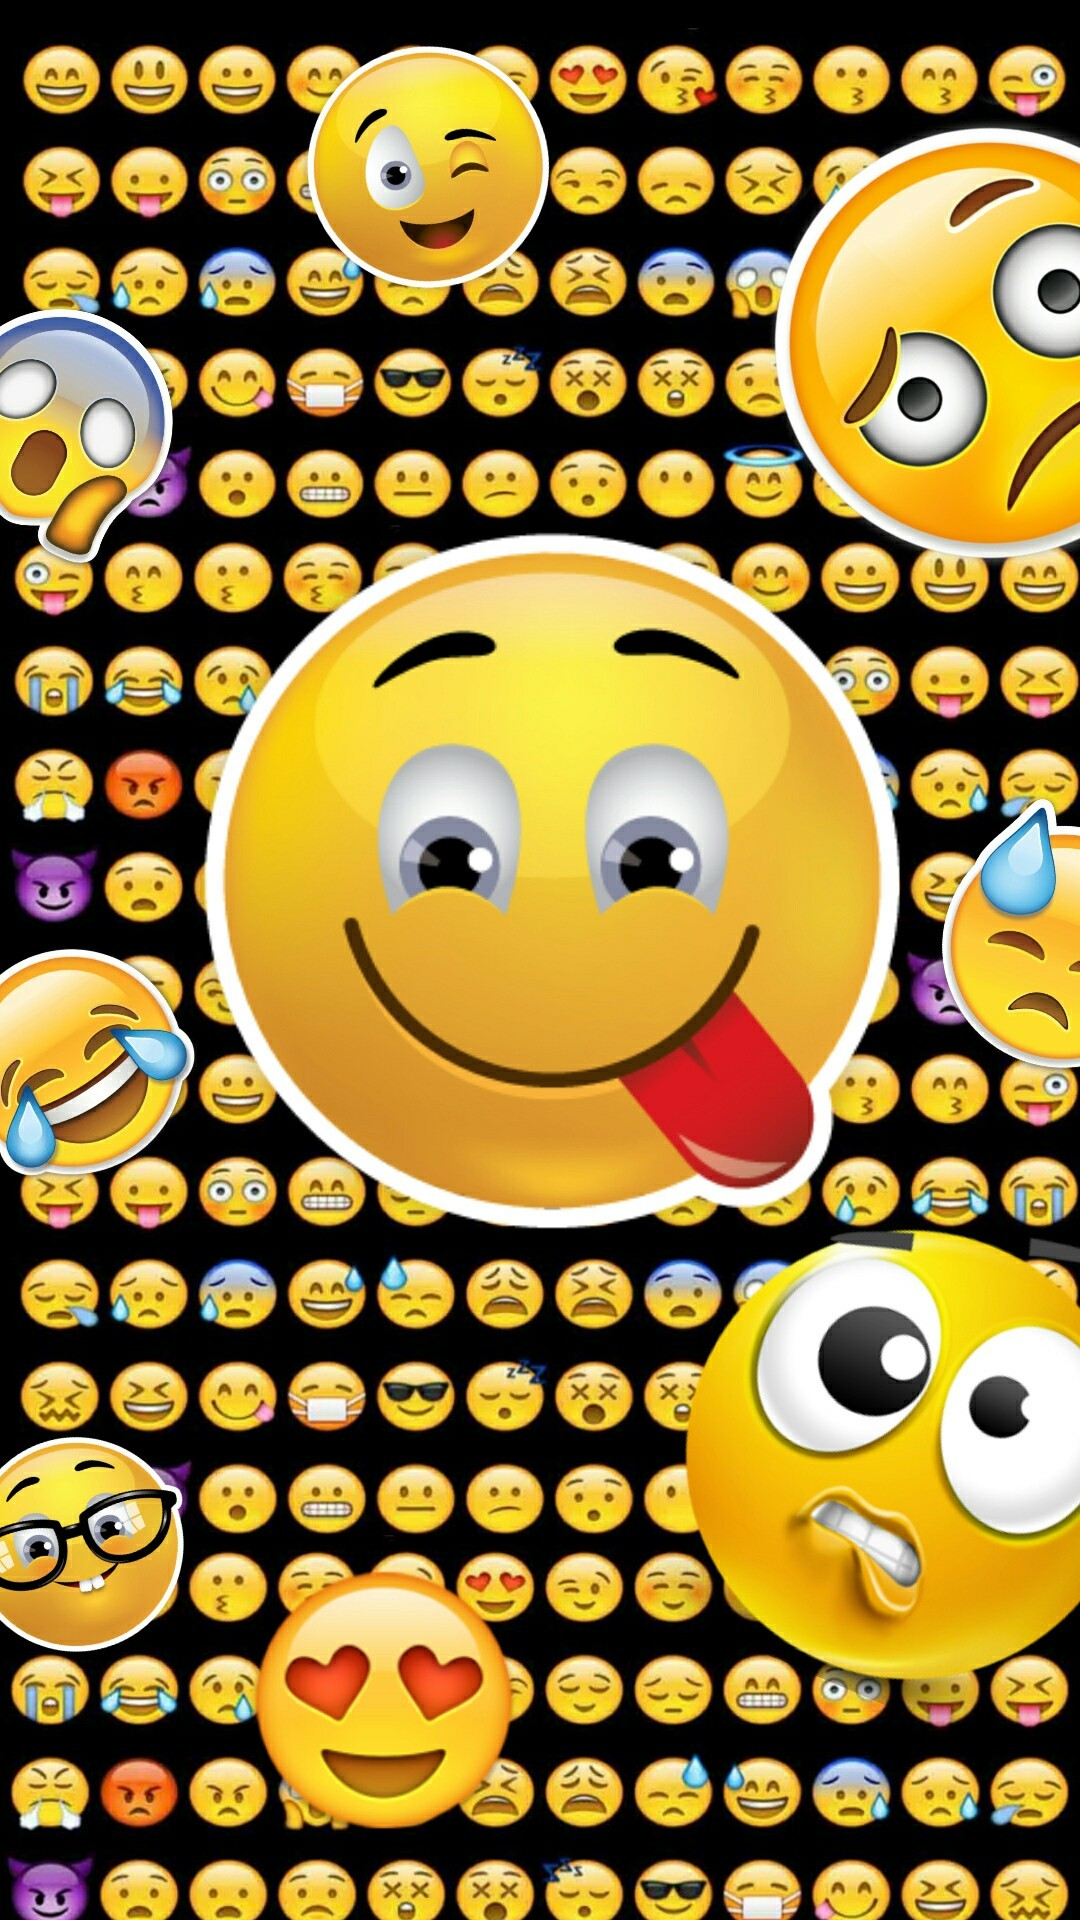 Cute Girly Wallpapers For Iphone 6 Plus Cute Emoji Wallpapers For Iphone 57 Images